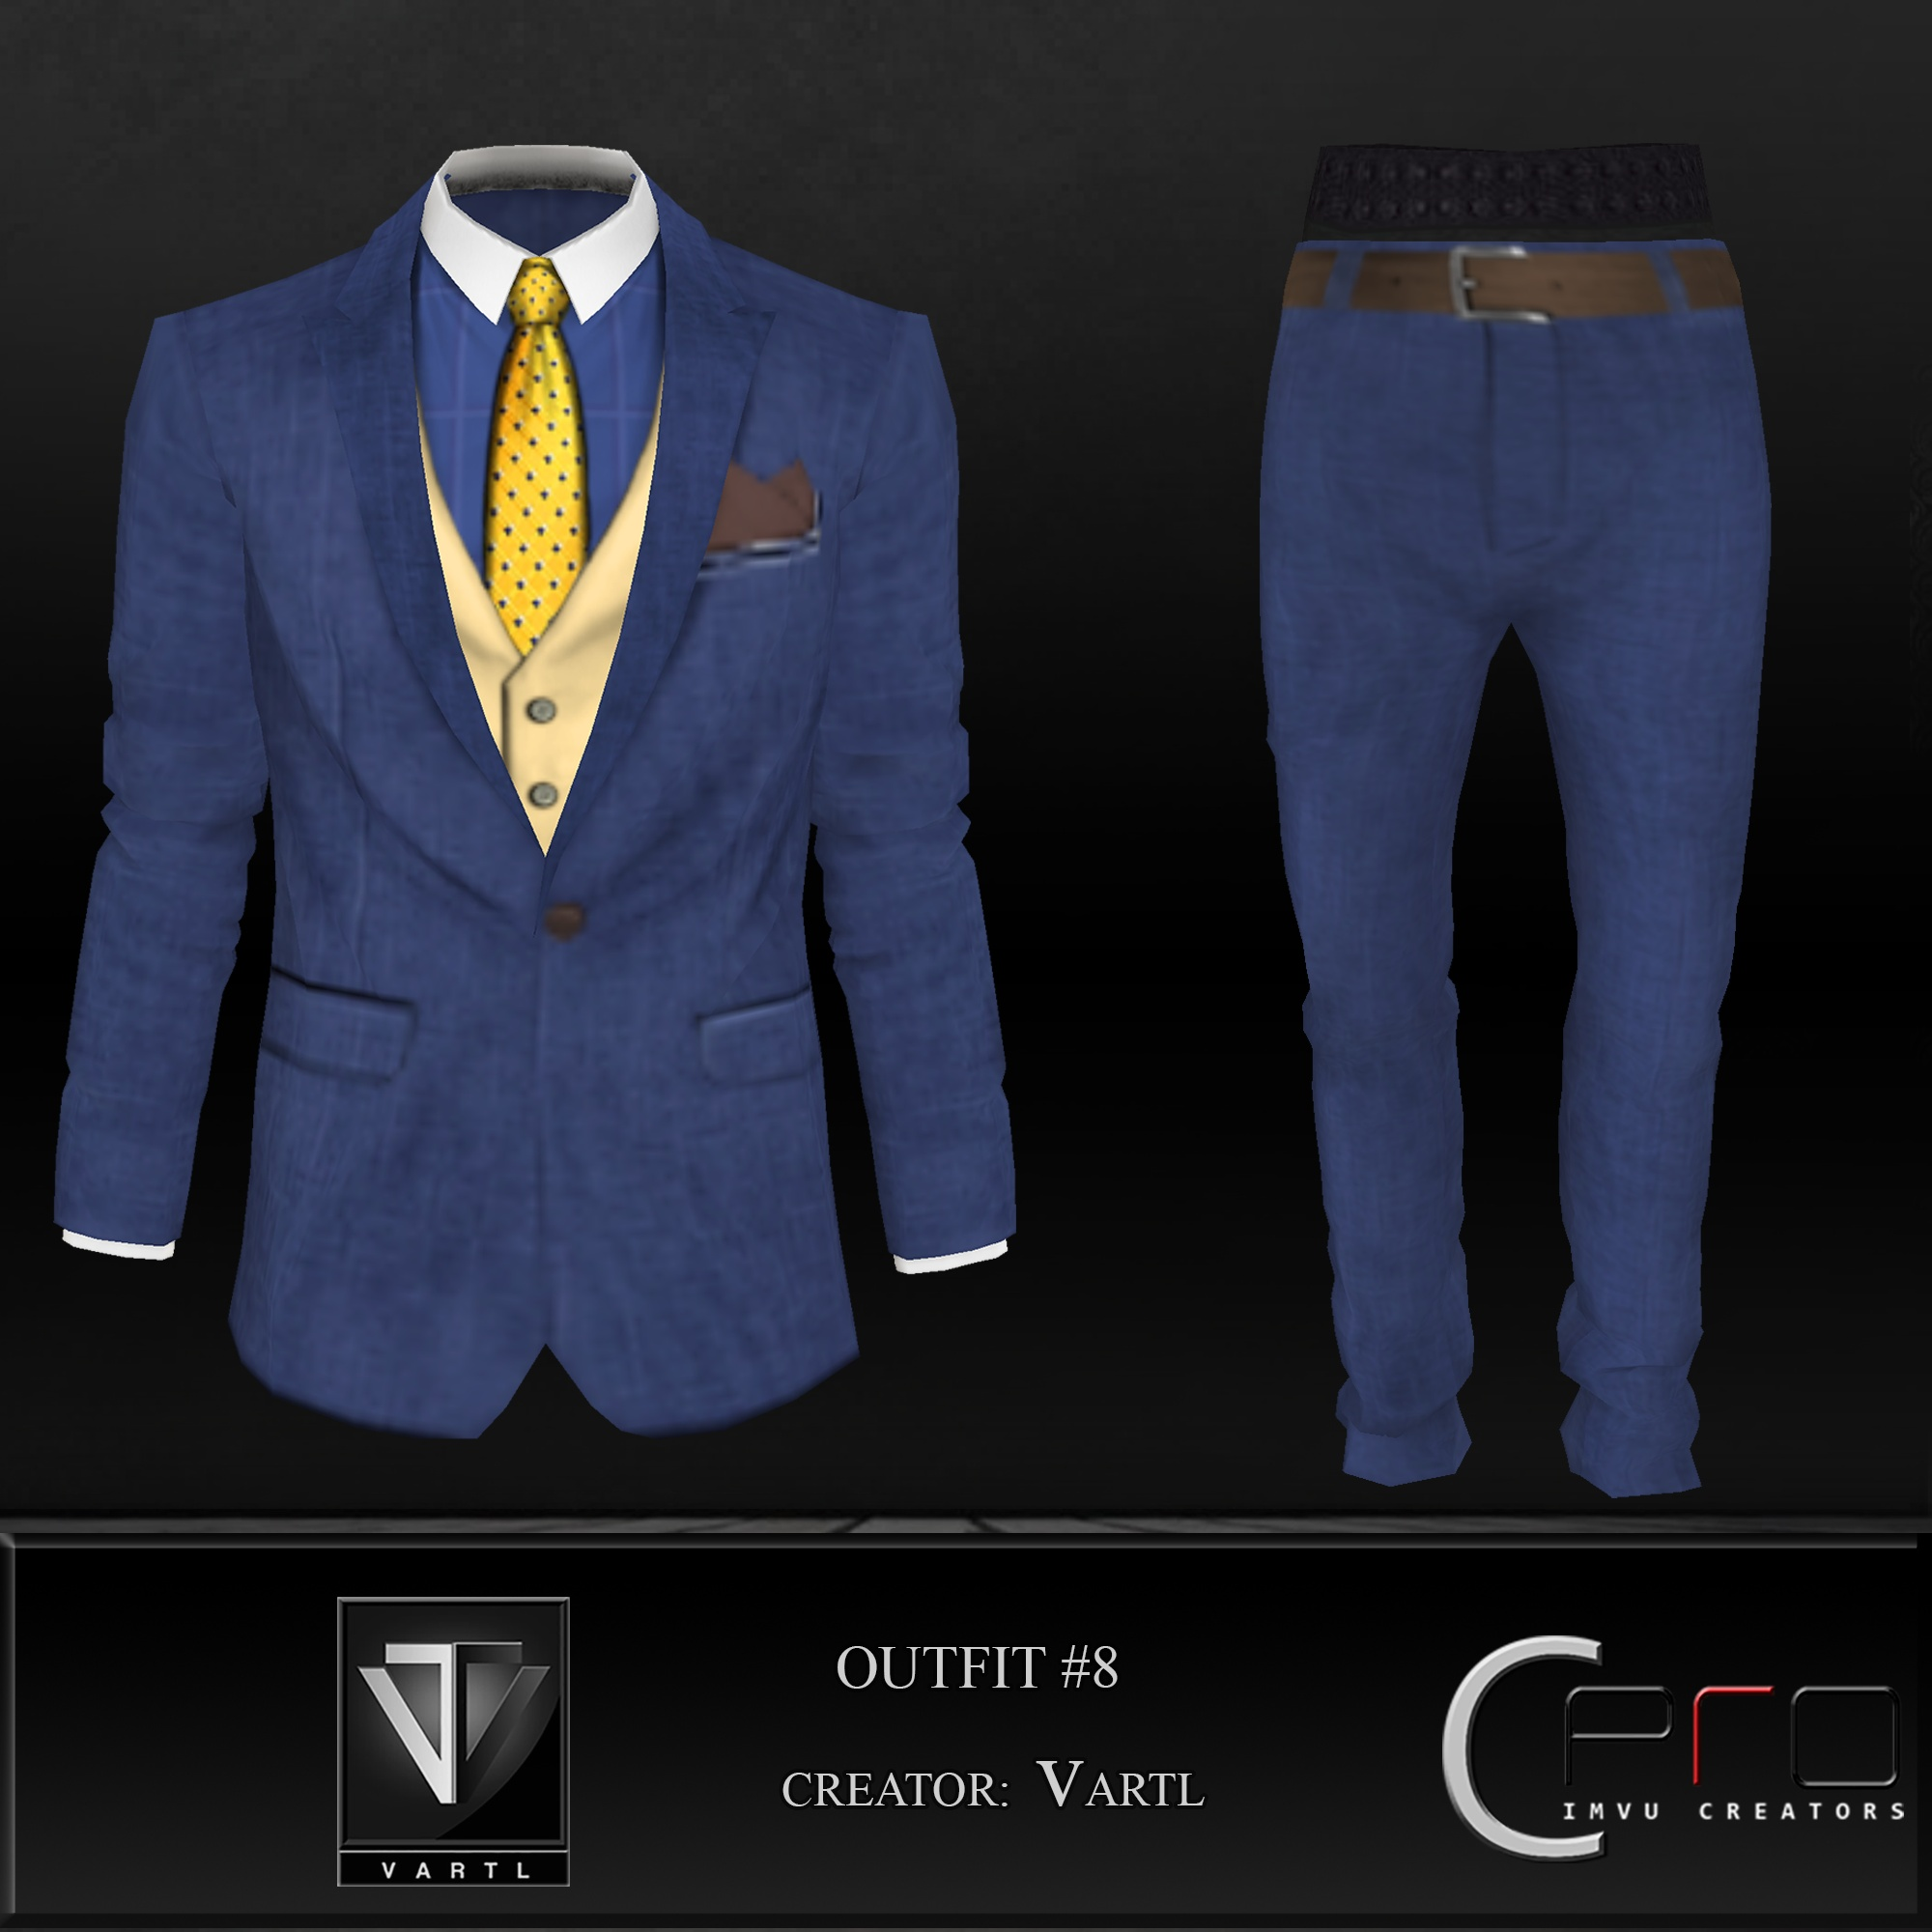 VT OUTFIT #8